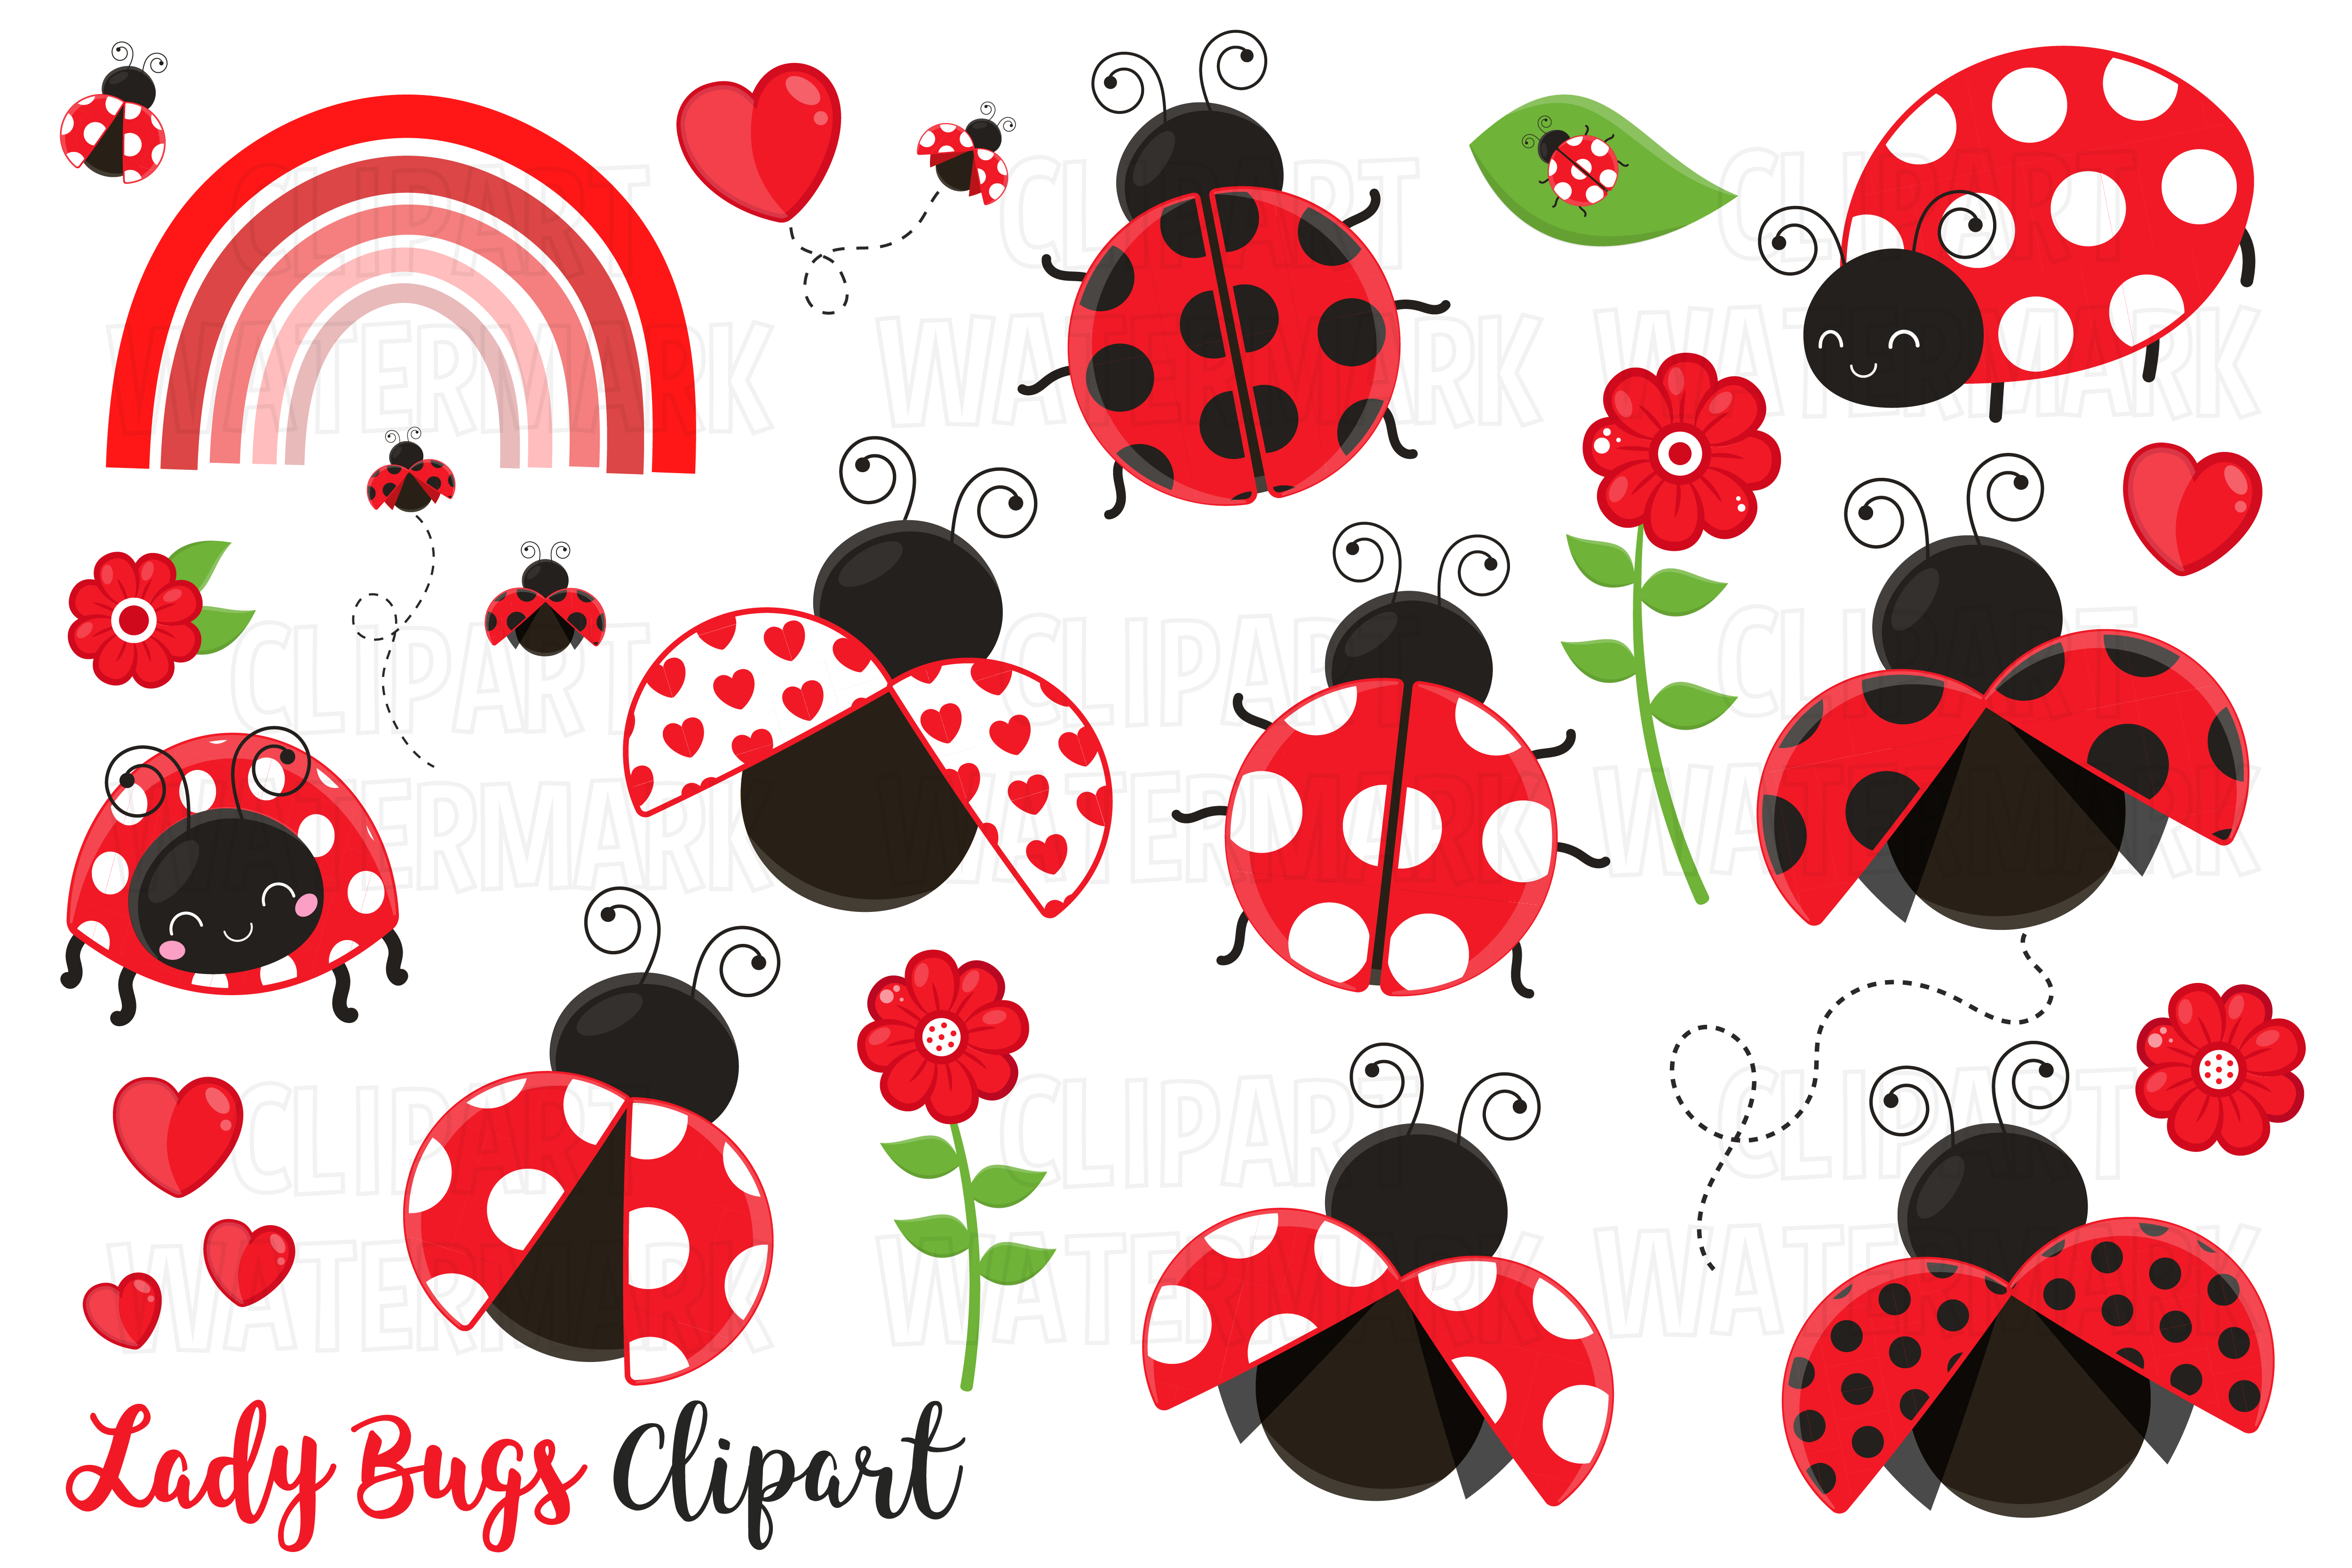 Download Free Cute Ladybug Clipart Graphic By Magreenhouse Creative Fabrica for Cricut Explore, Silhouette and other cutting machines.